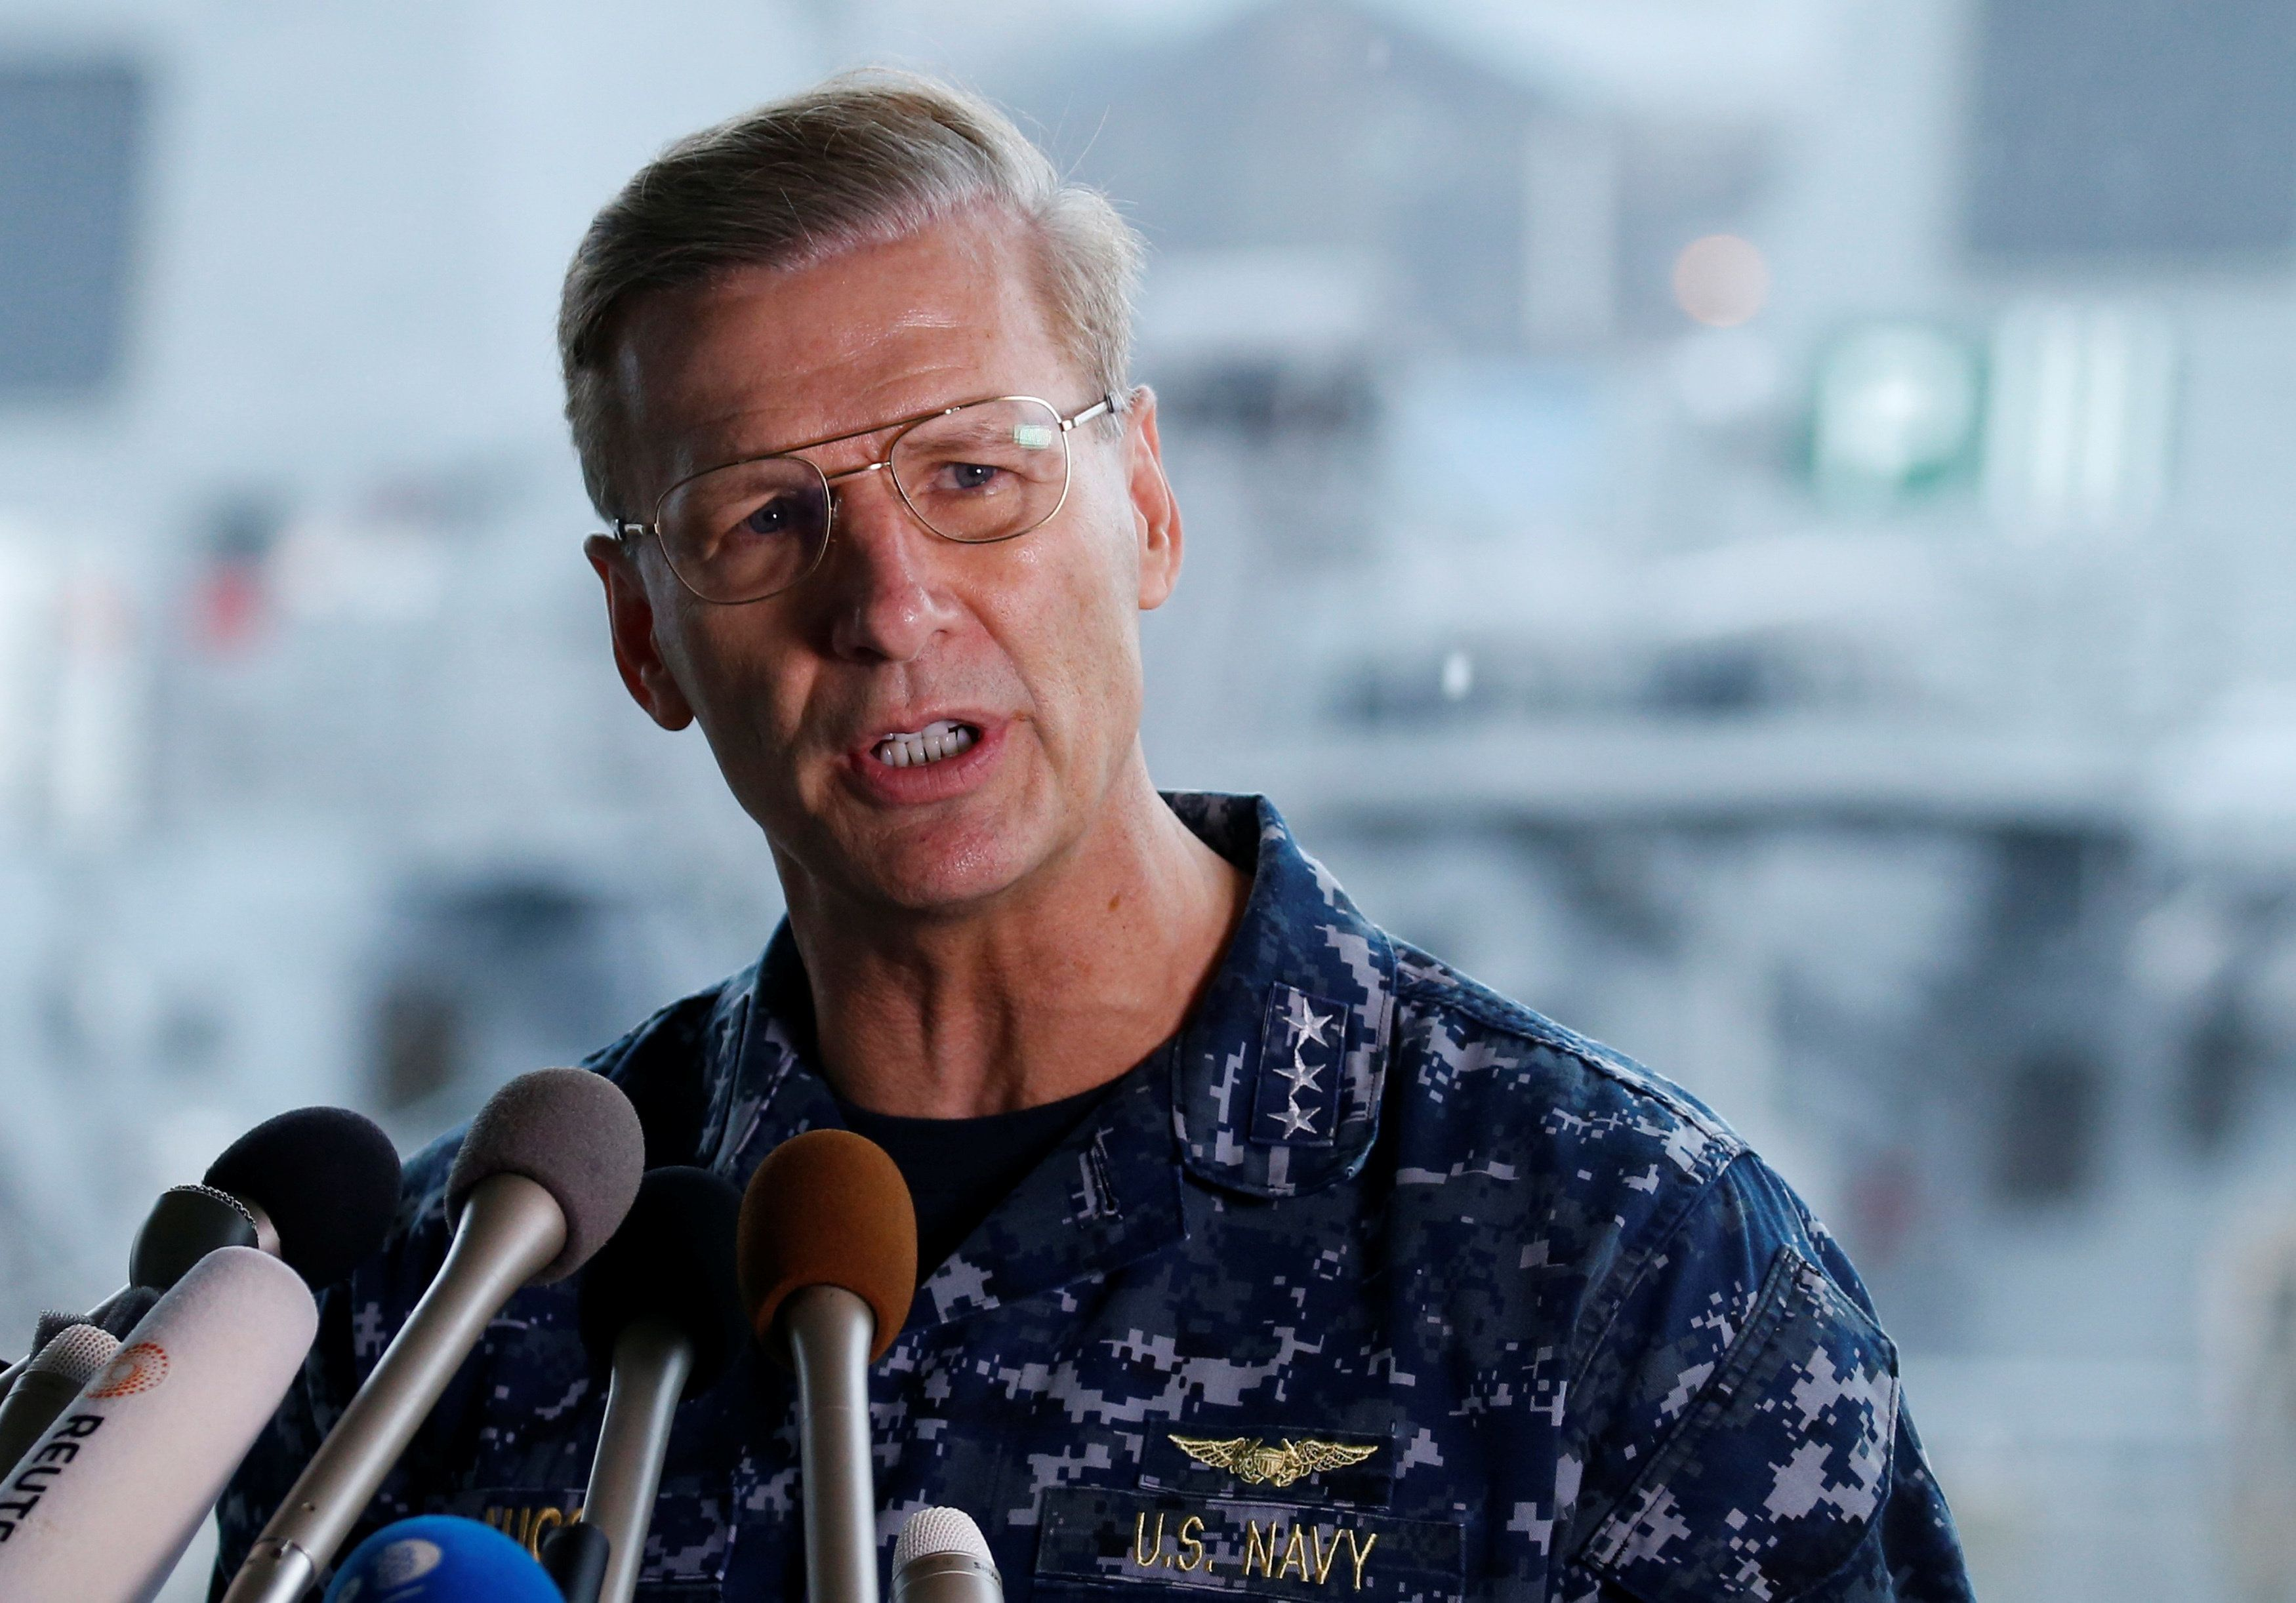 Vice Adm. Joseph Aucoin will be removed as the commander of the Navy's 7thFleet, according to multiple